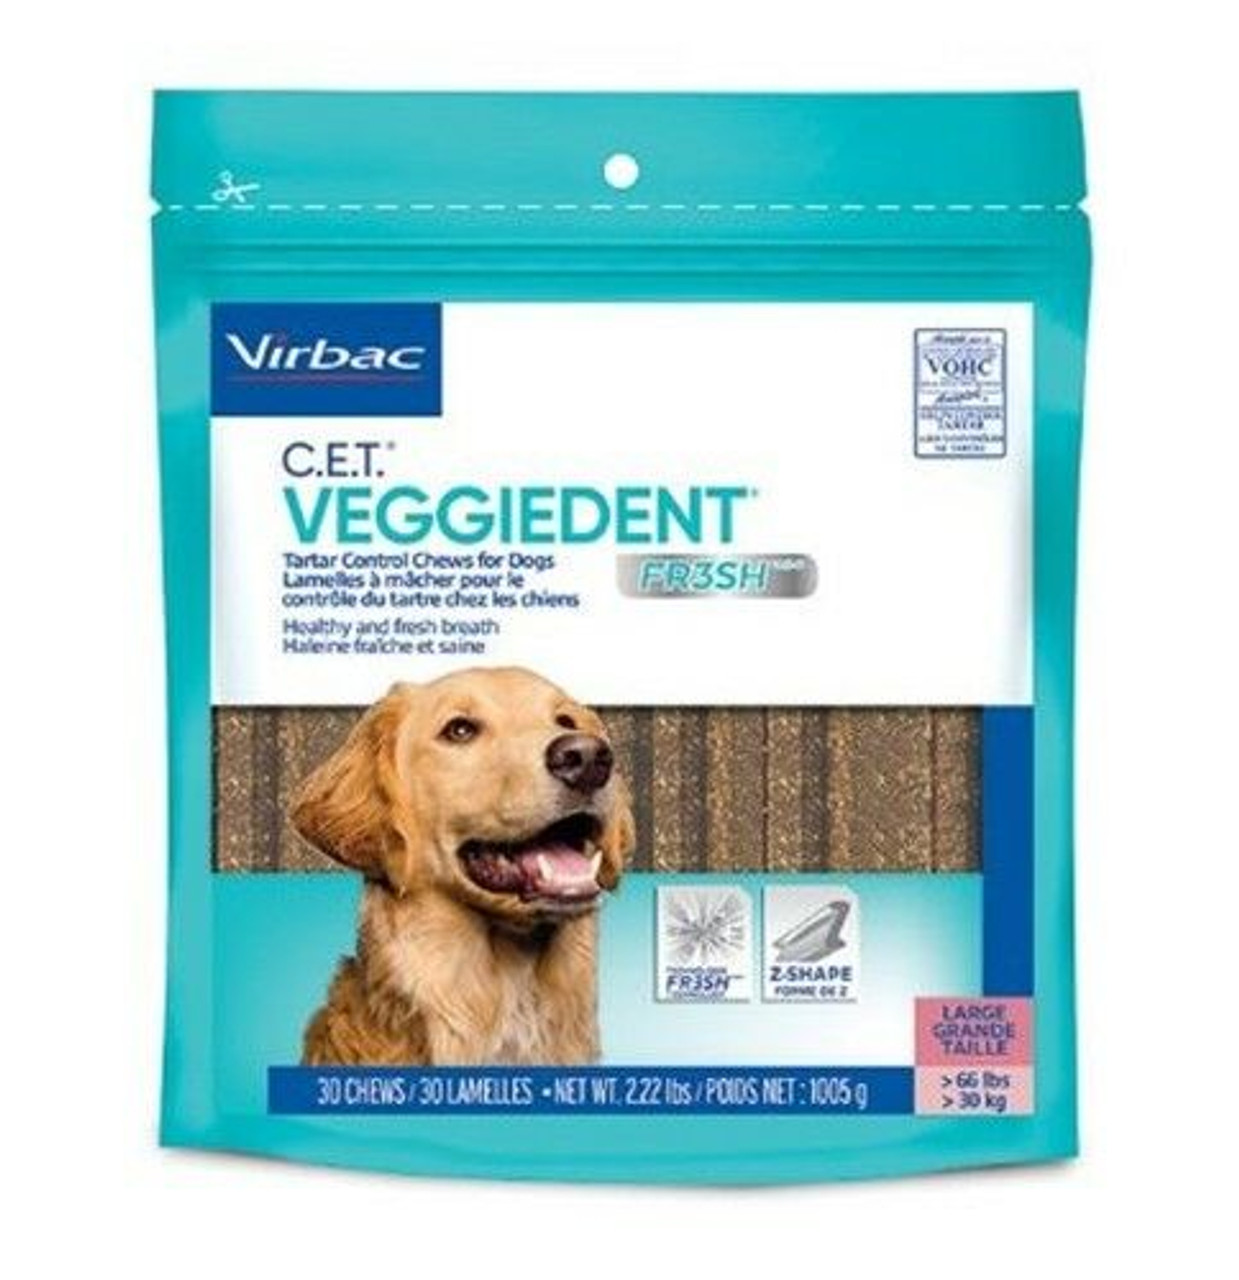 C.E.T. VeggieDent FR3SH Tartar Control Chews for Large Dogs, 30 Ct.